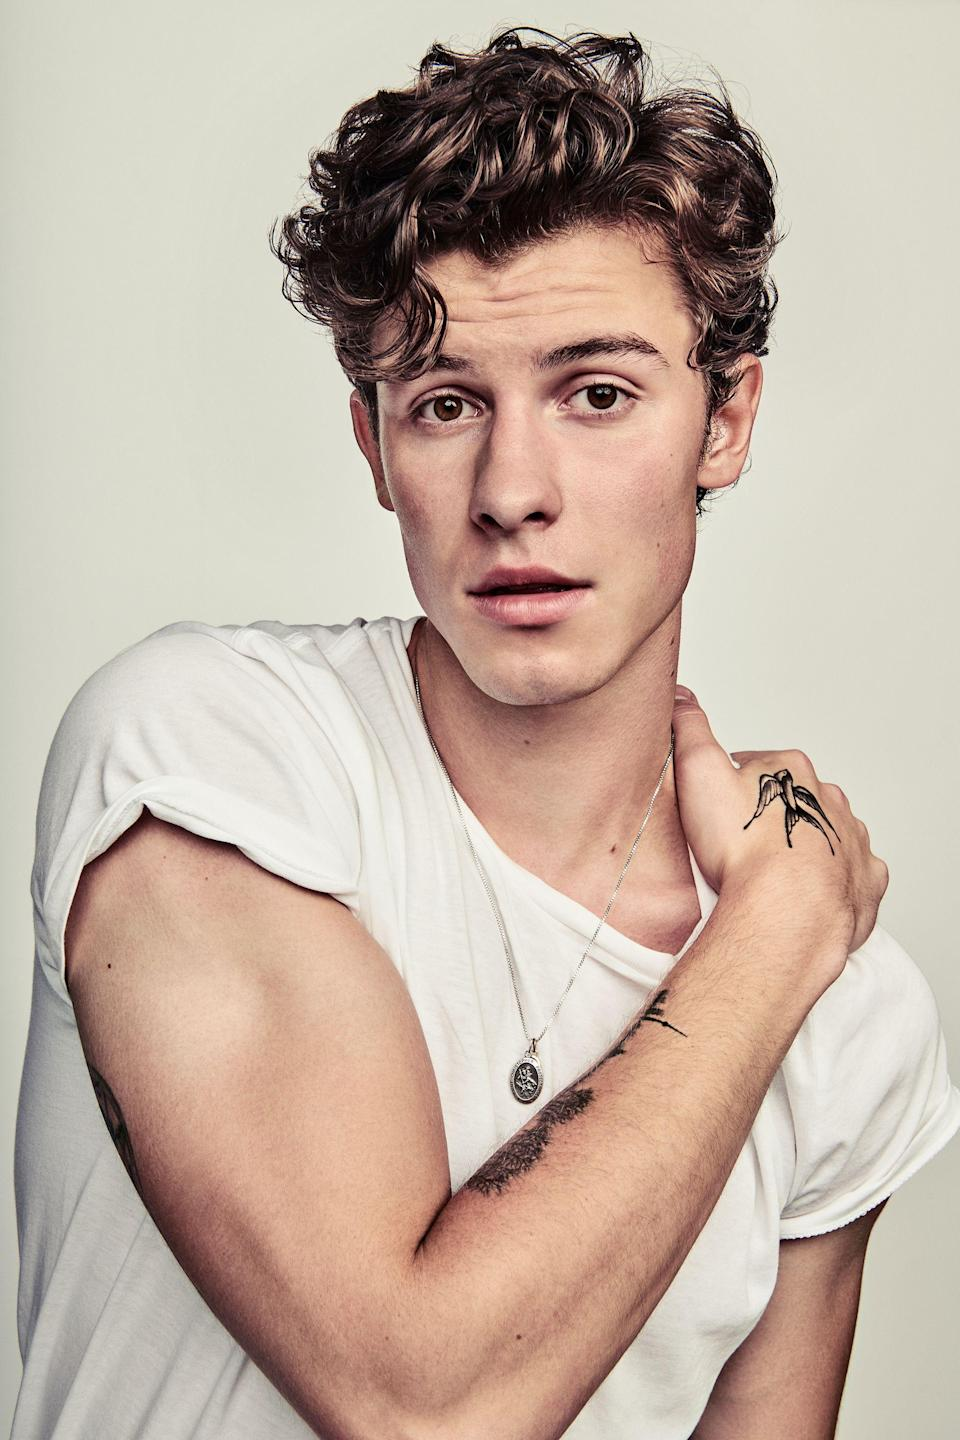 Shawn Mendes. Image via RollingStone. Photography by Ruven Afanador.